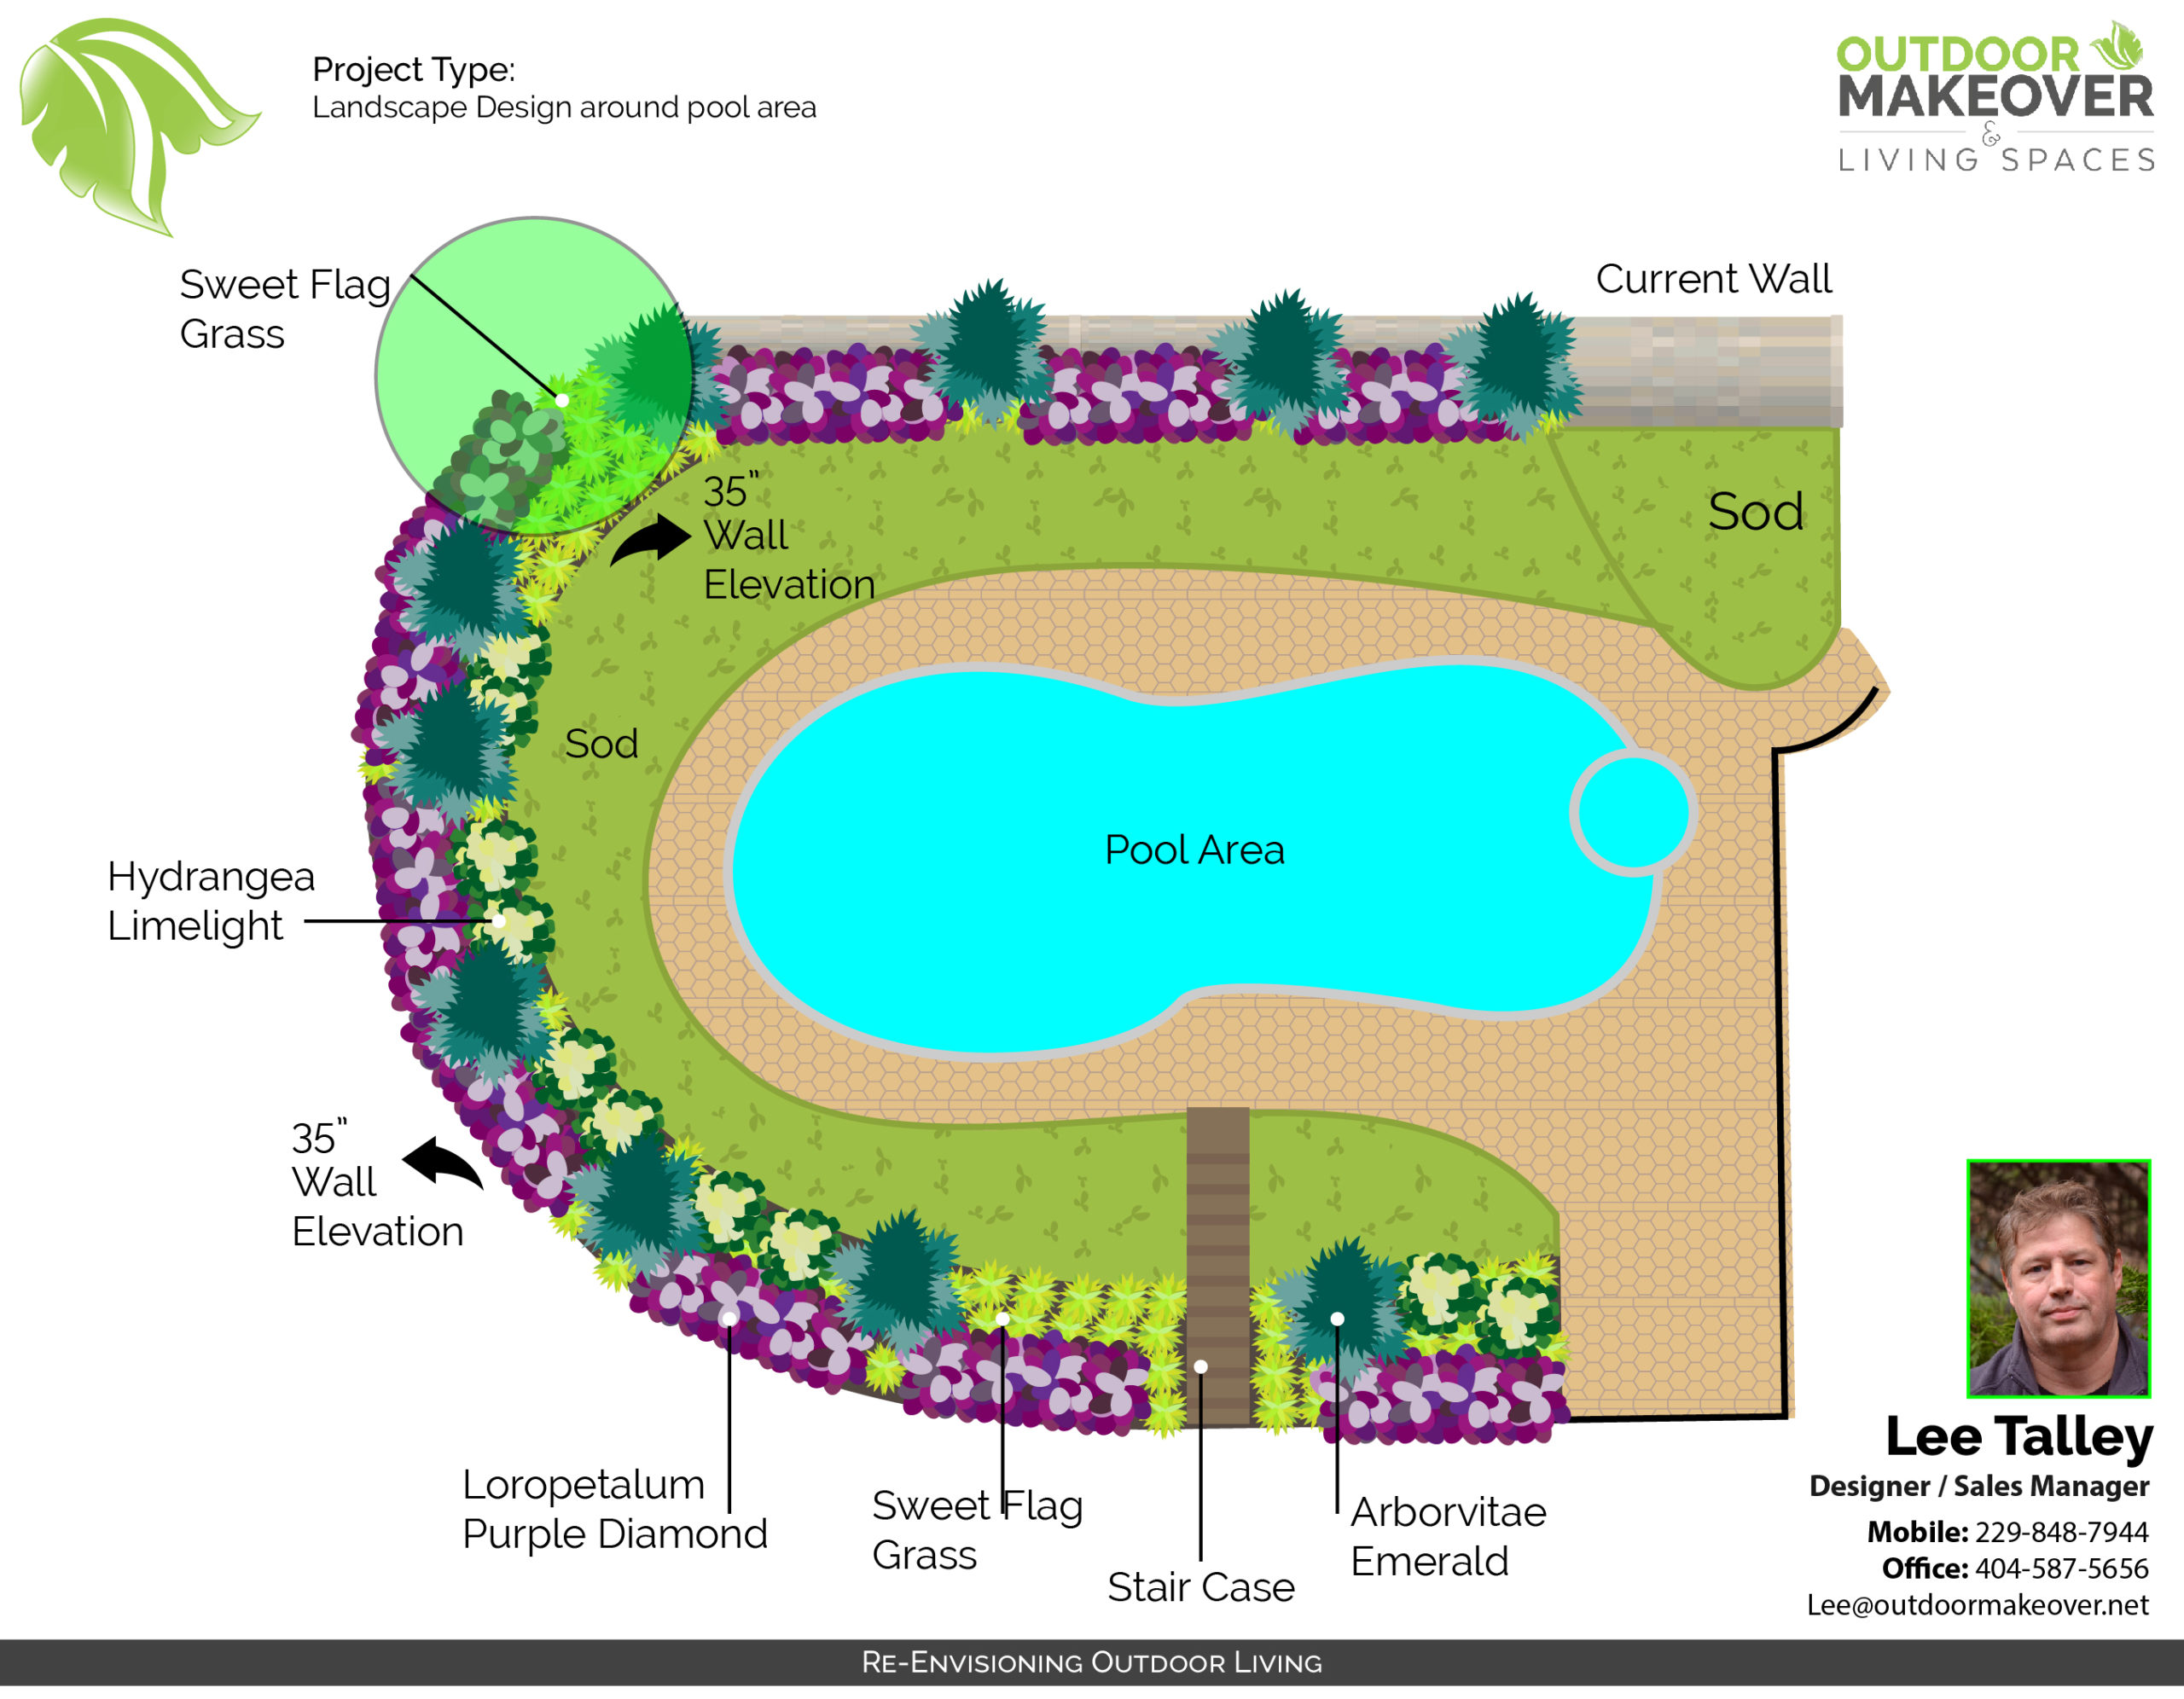 landscape design around pool area plans